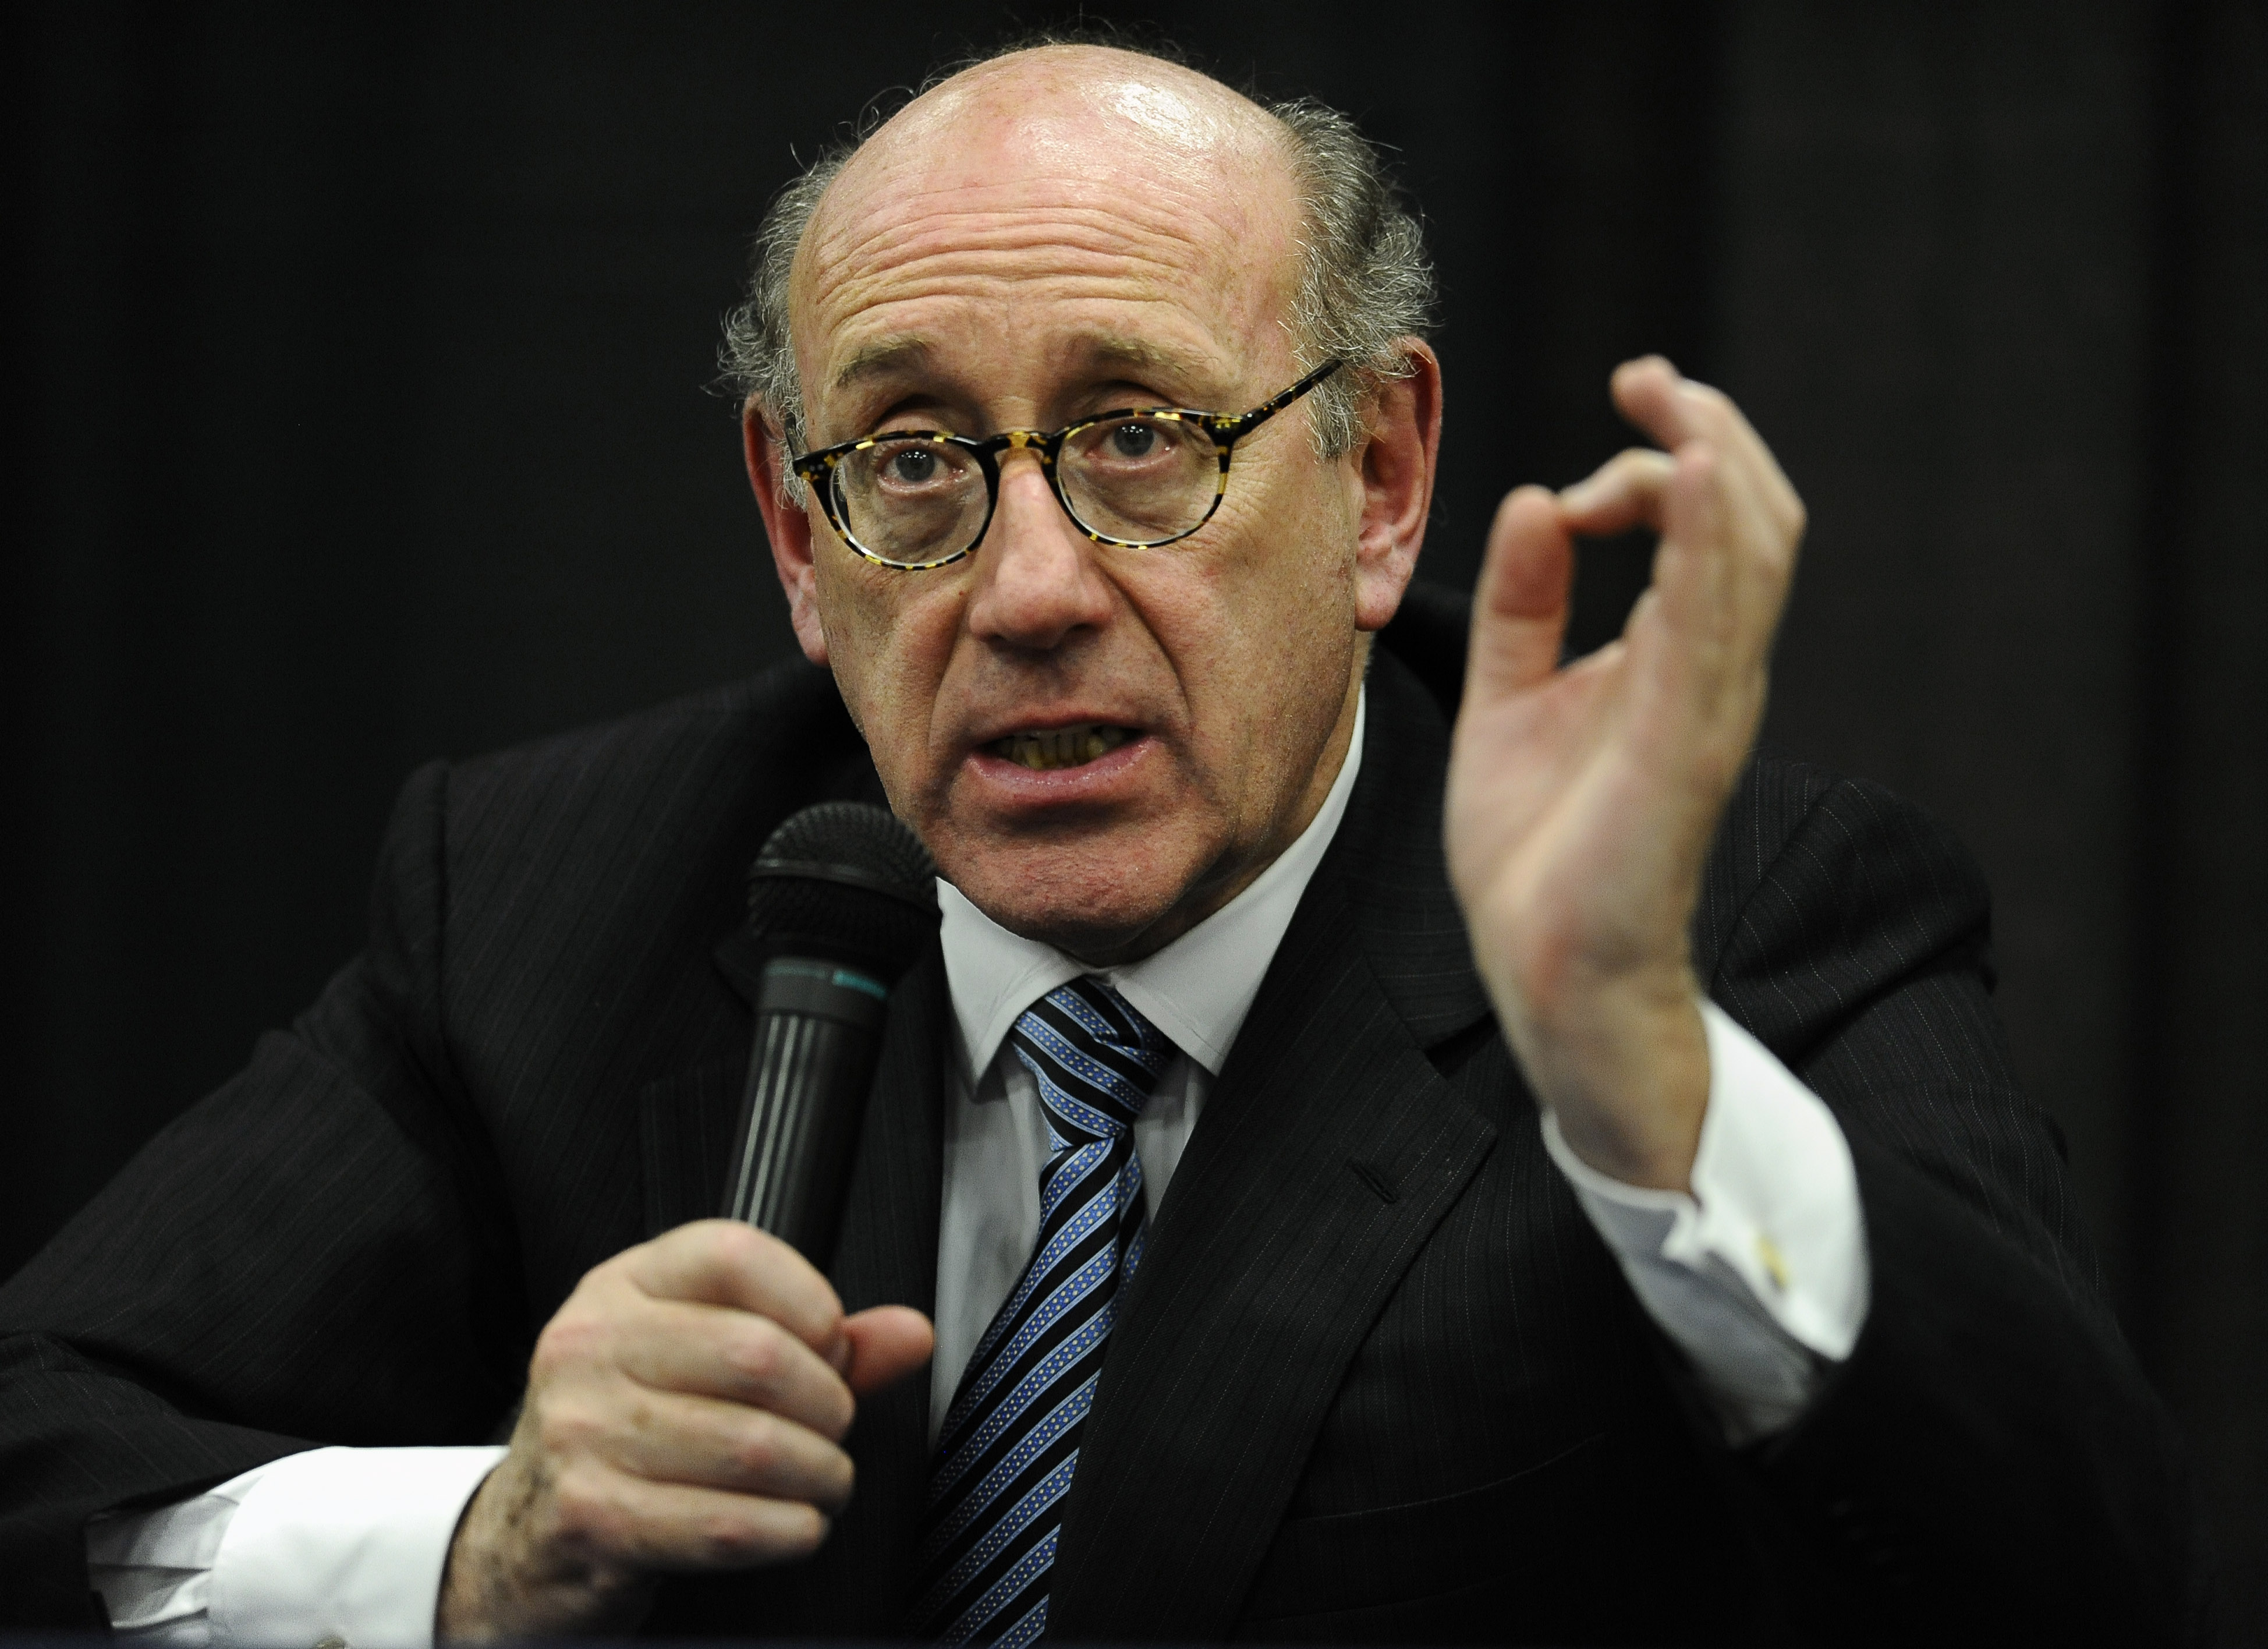 Attorney and special adviser Kenneth Feinberg speaks at a public forum on the distribution of Newtown donations at Edmond Town Hall in Newtown, Conn. on July 11, 2013.